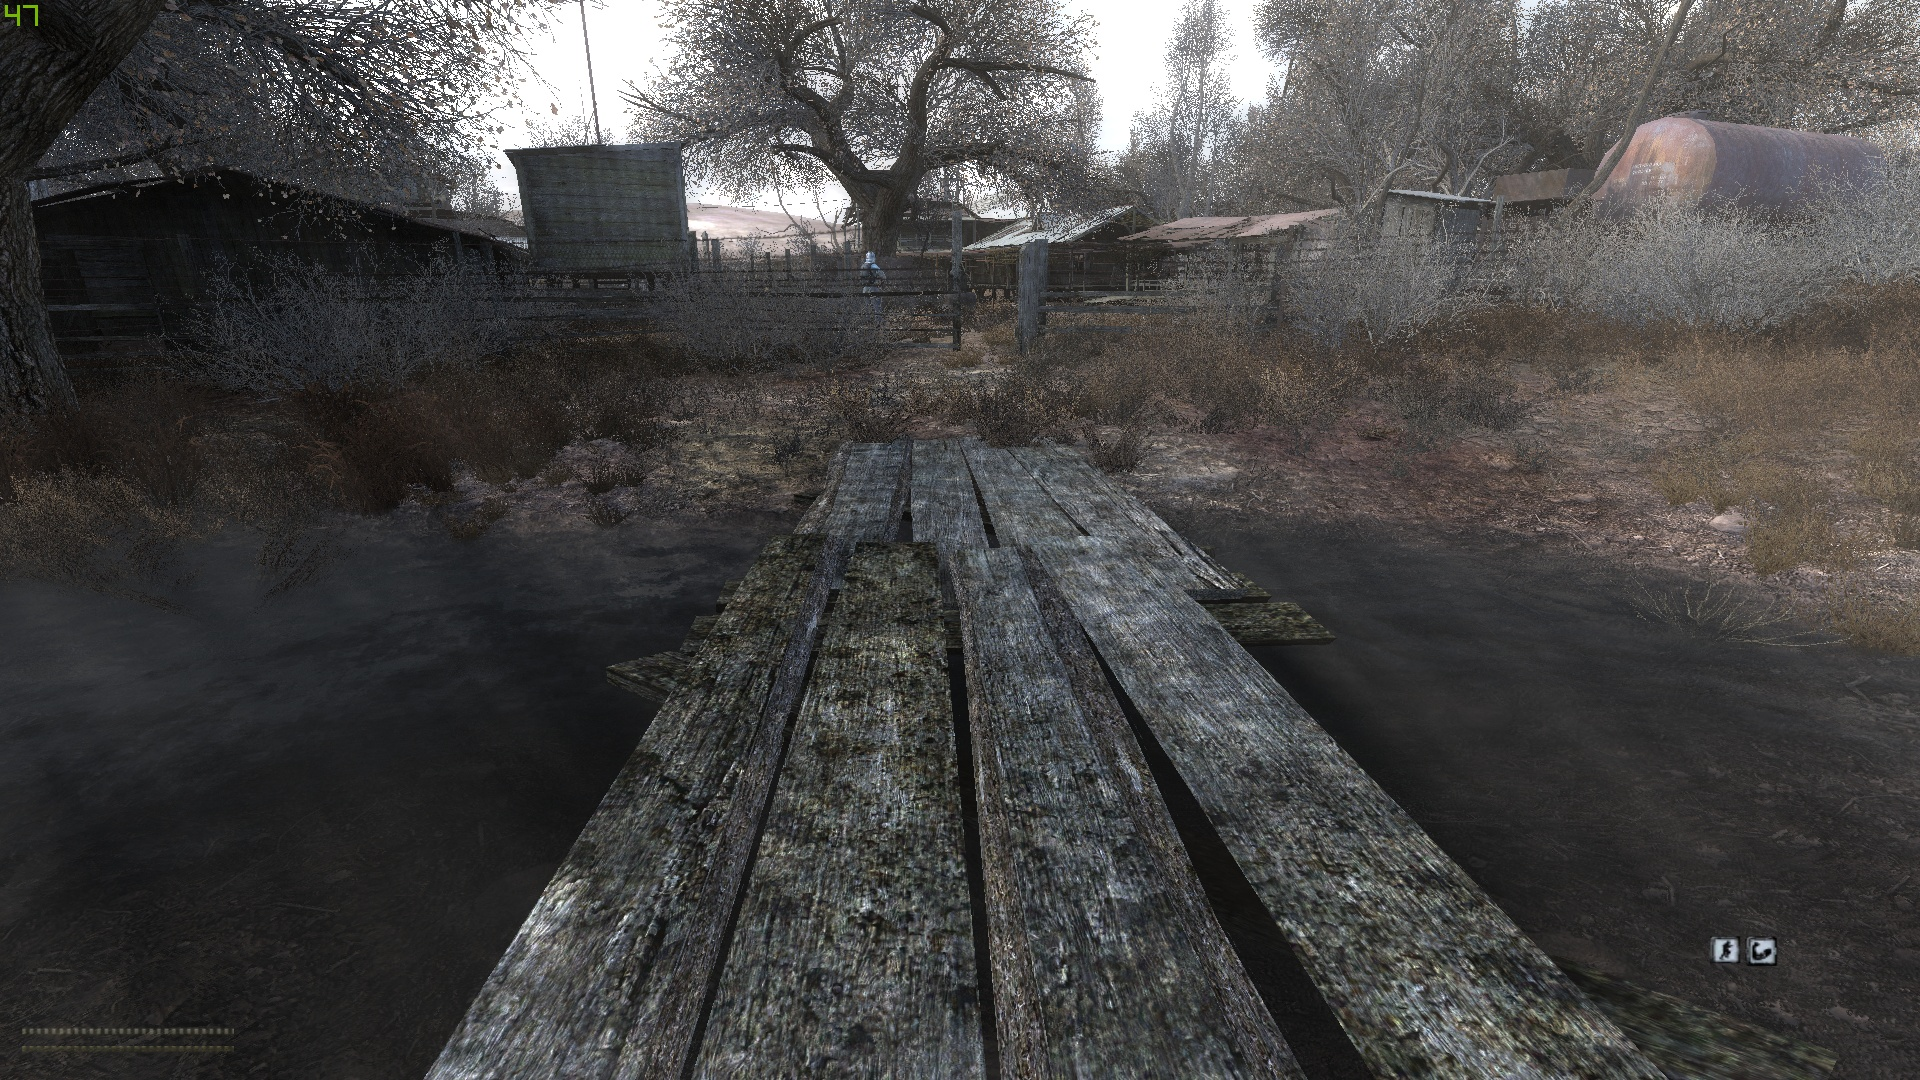 ss_Администратор_05-25-18_01-21-56_(k00_marsh).jpg - S.T.A.L.K.E.R.: Call of Pripyat